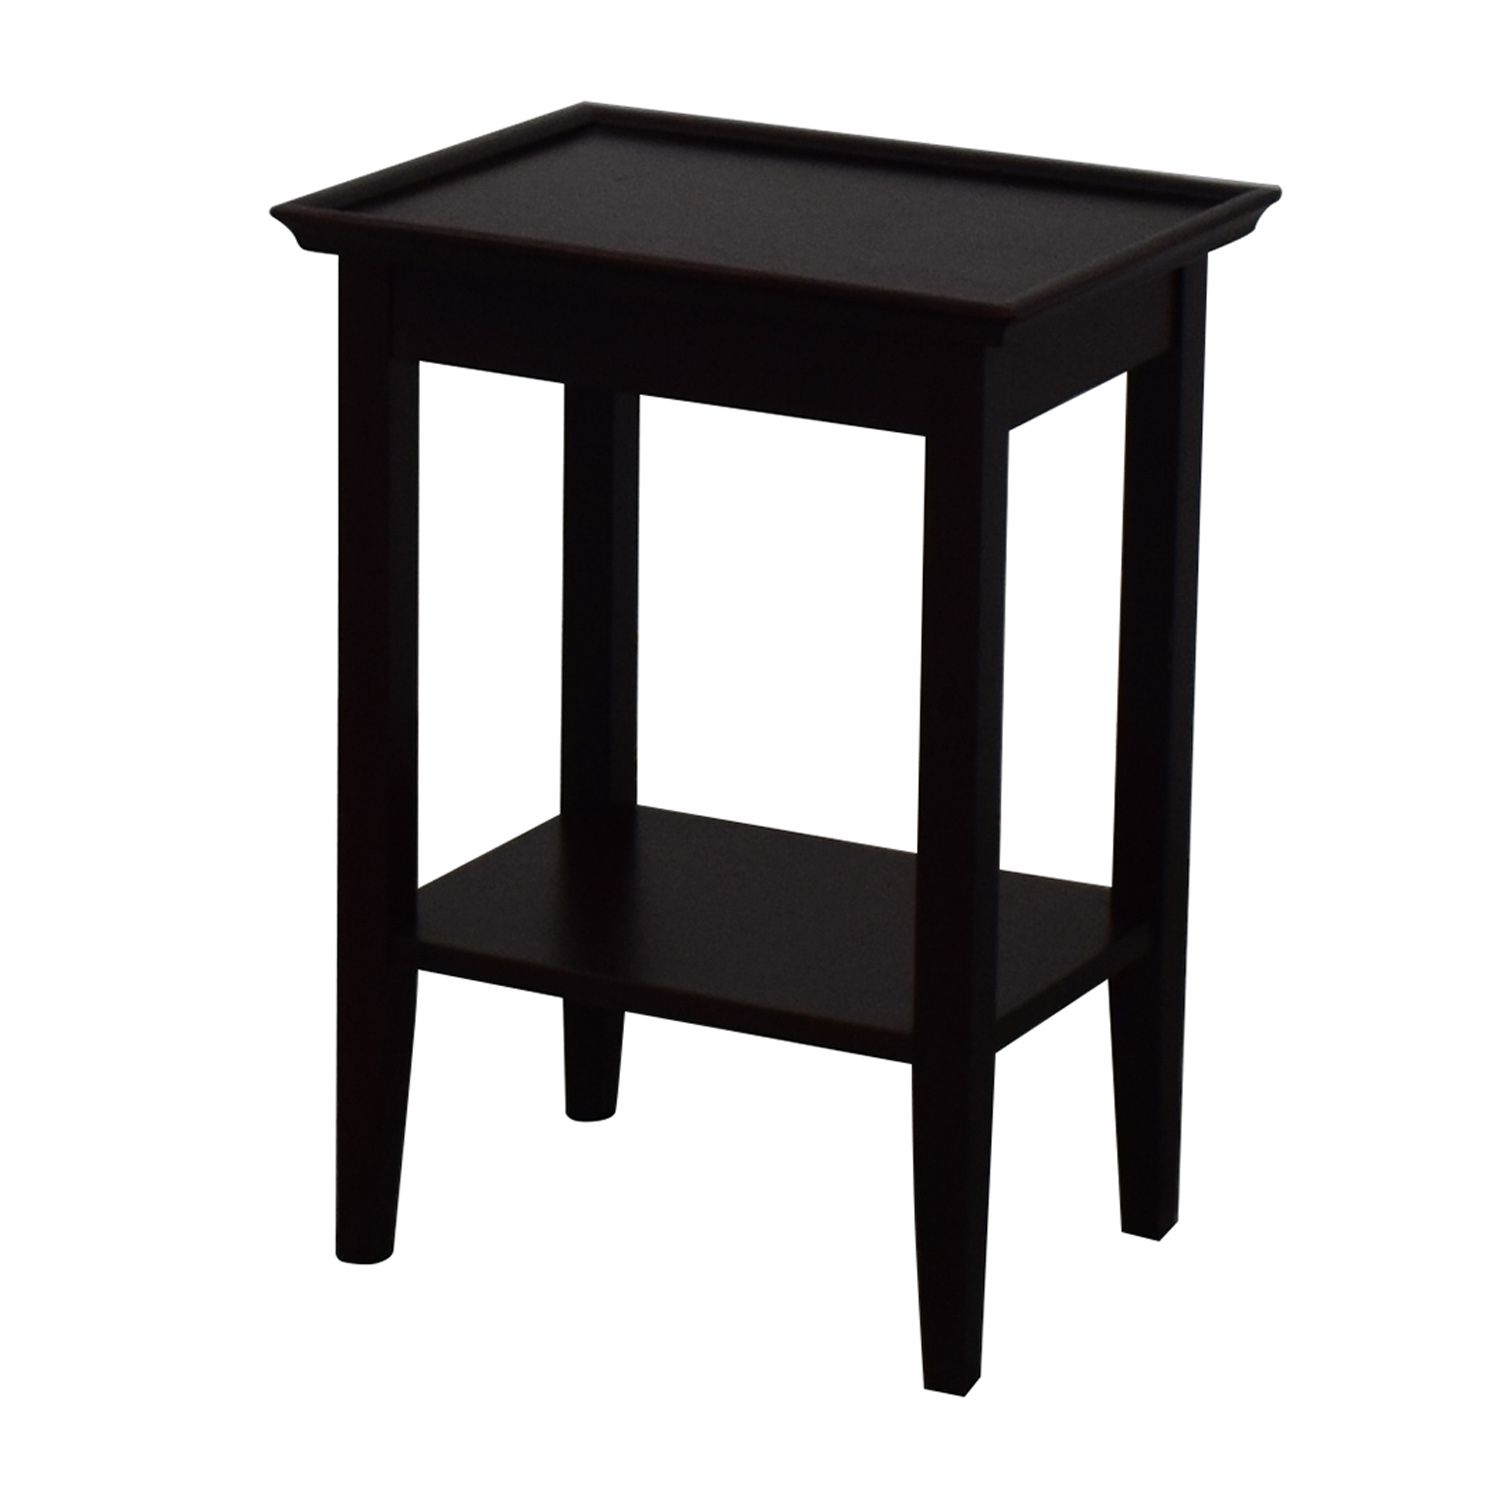 Crate & Barrel Bradshaw Side Table / Tables